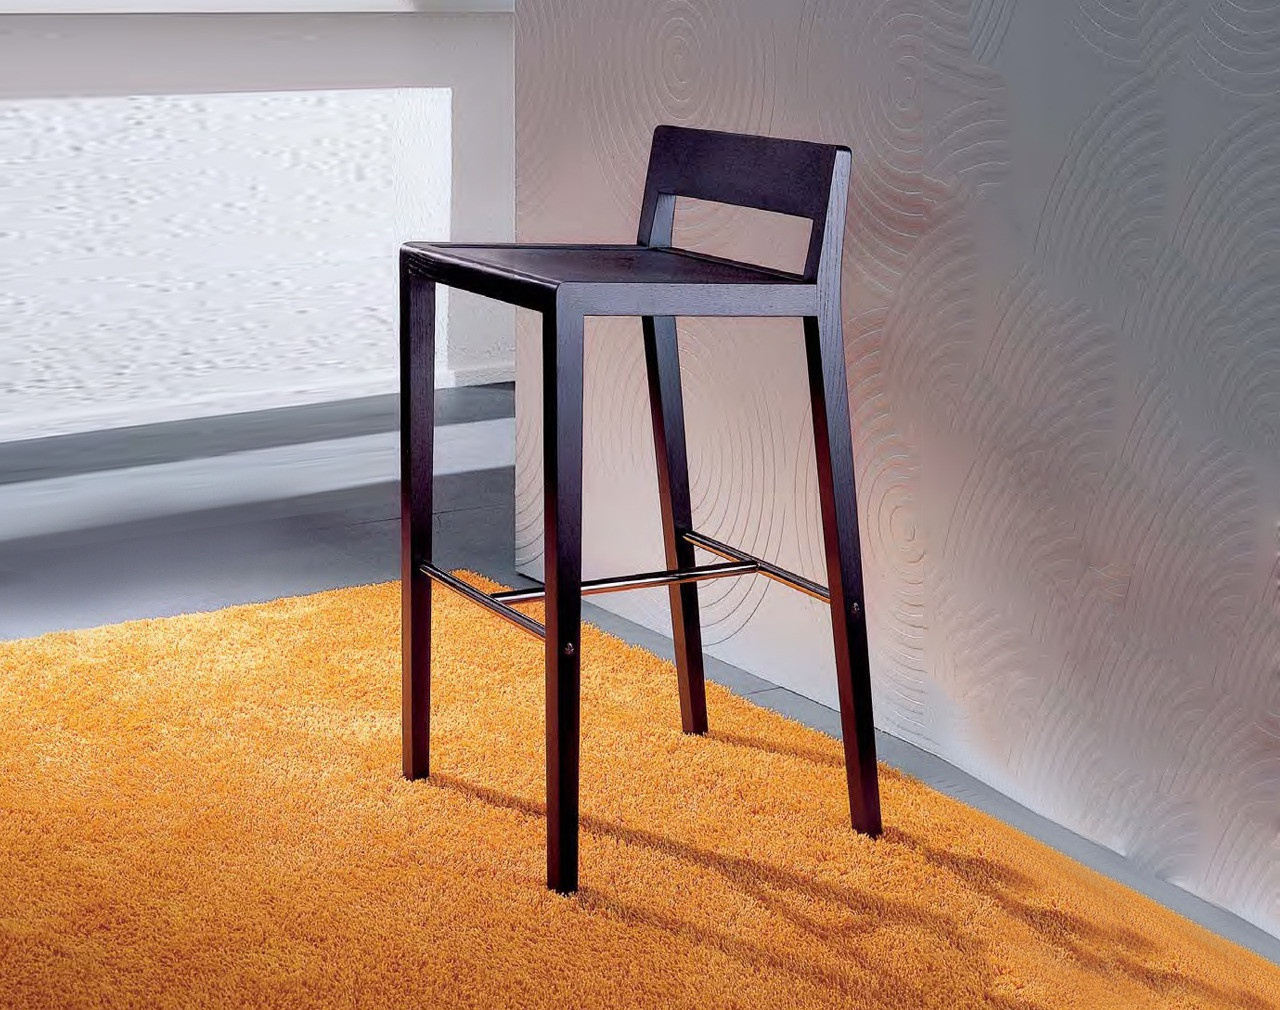 Bar chair made of solid wood with metal footrest bryant bryant